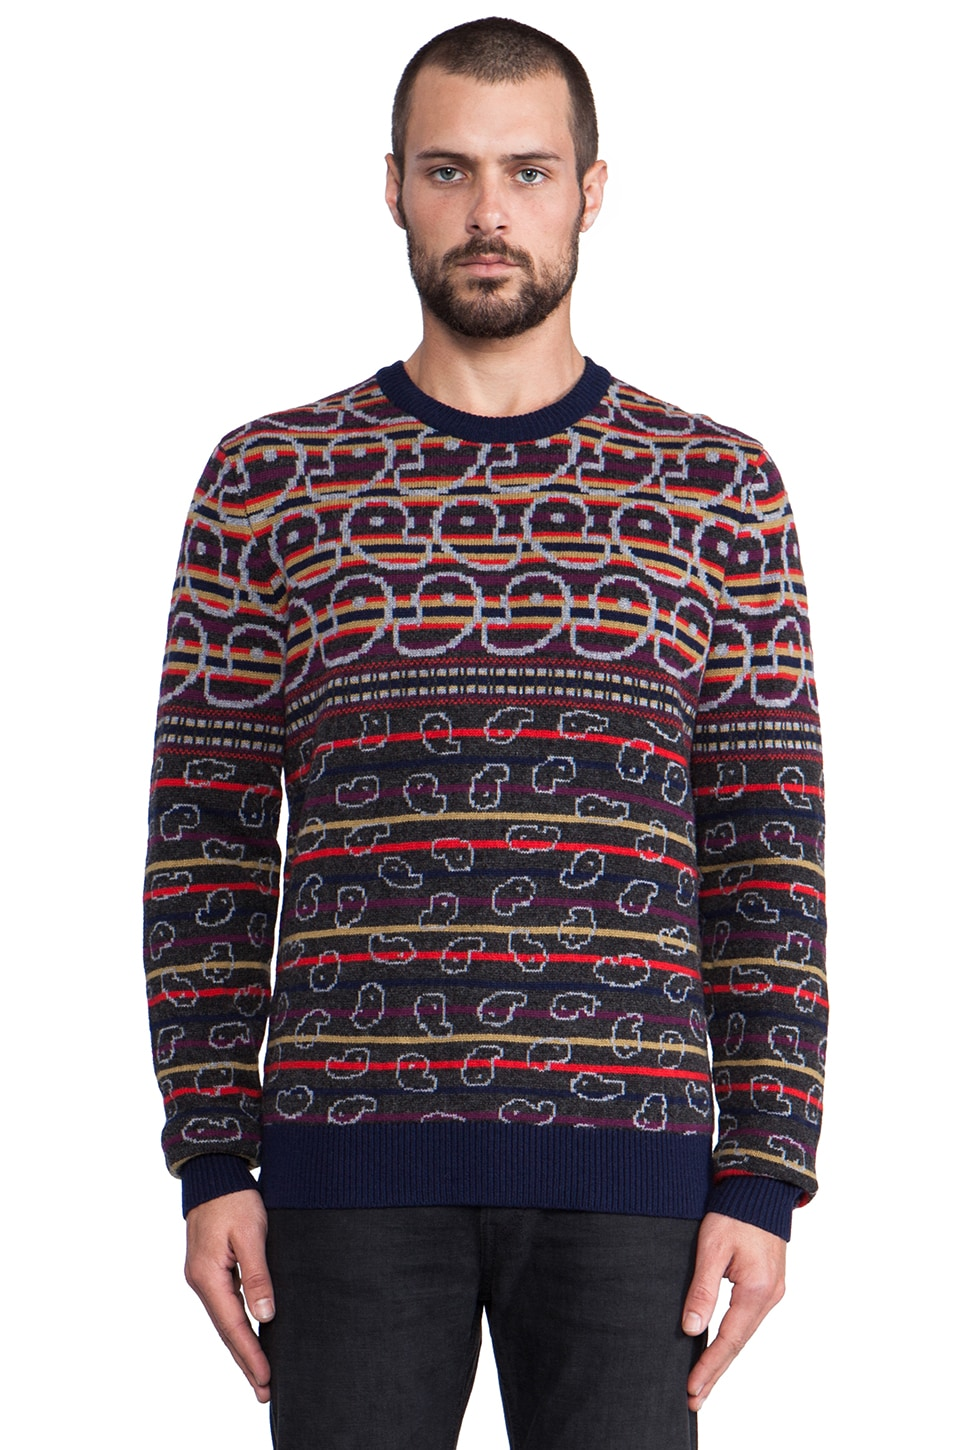 Marc by Marc Jacobs Finsbury Fairisle Sweater in Charcoal Multi